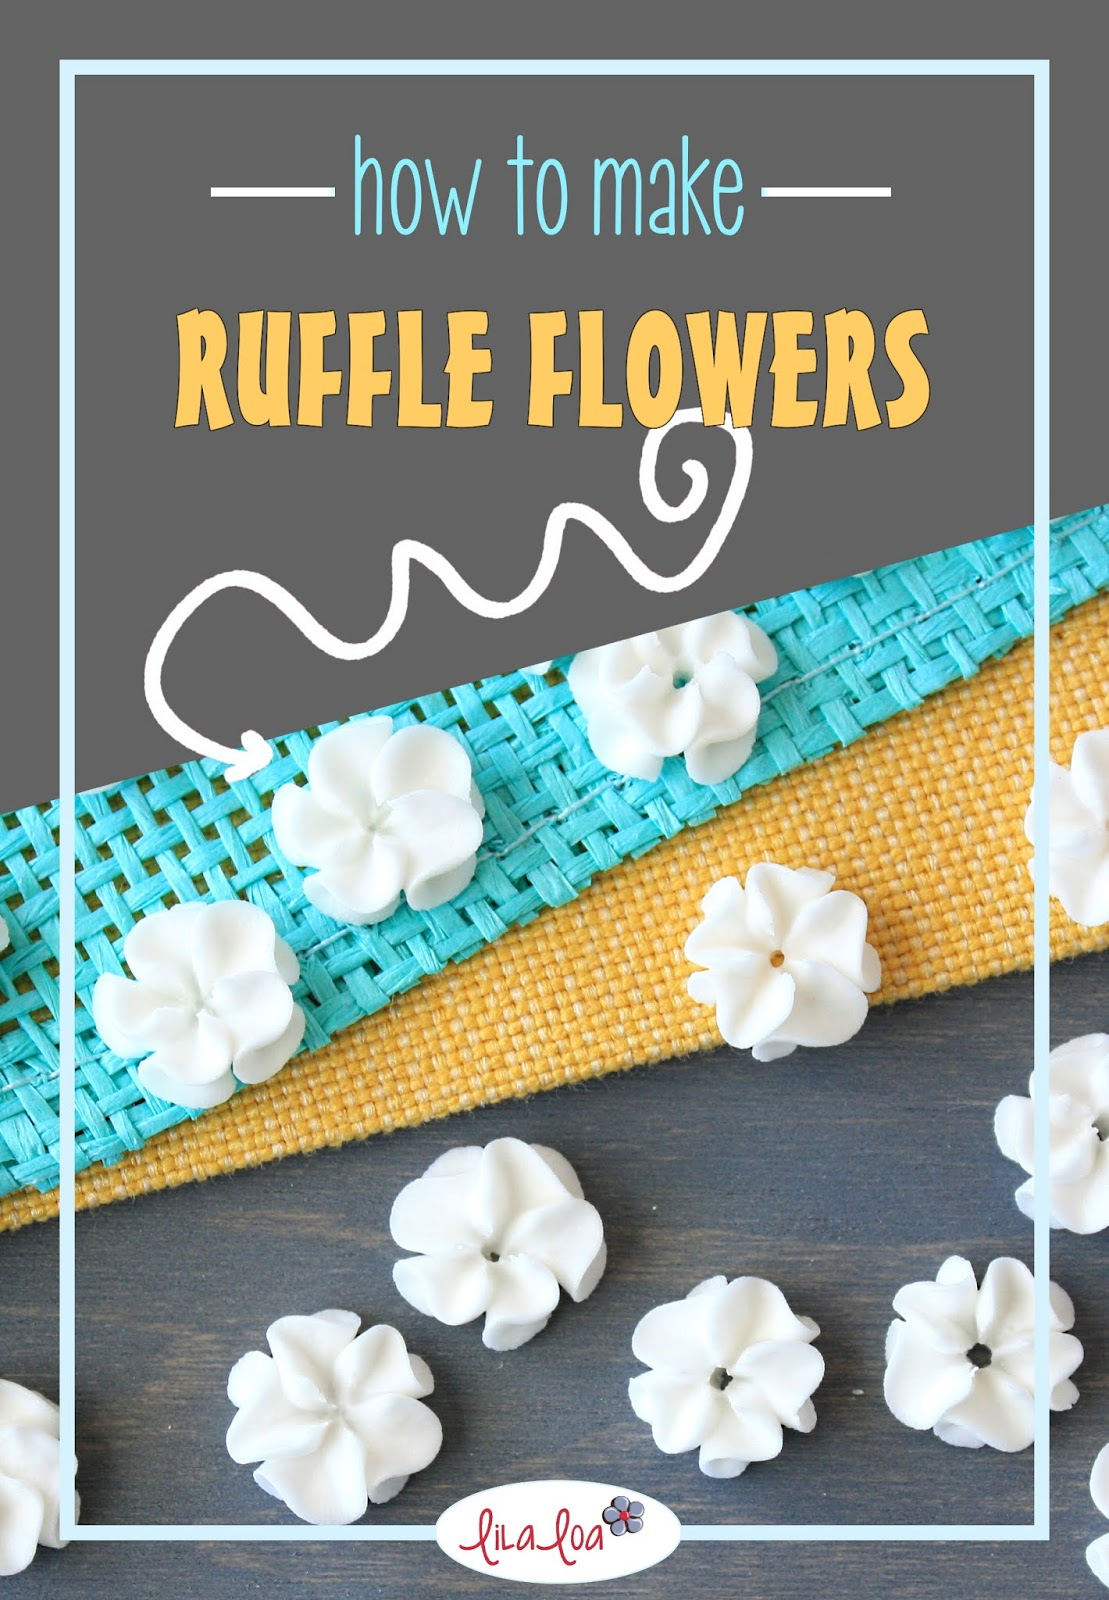 piped royal icing flowers